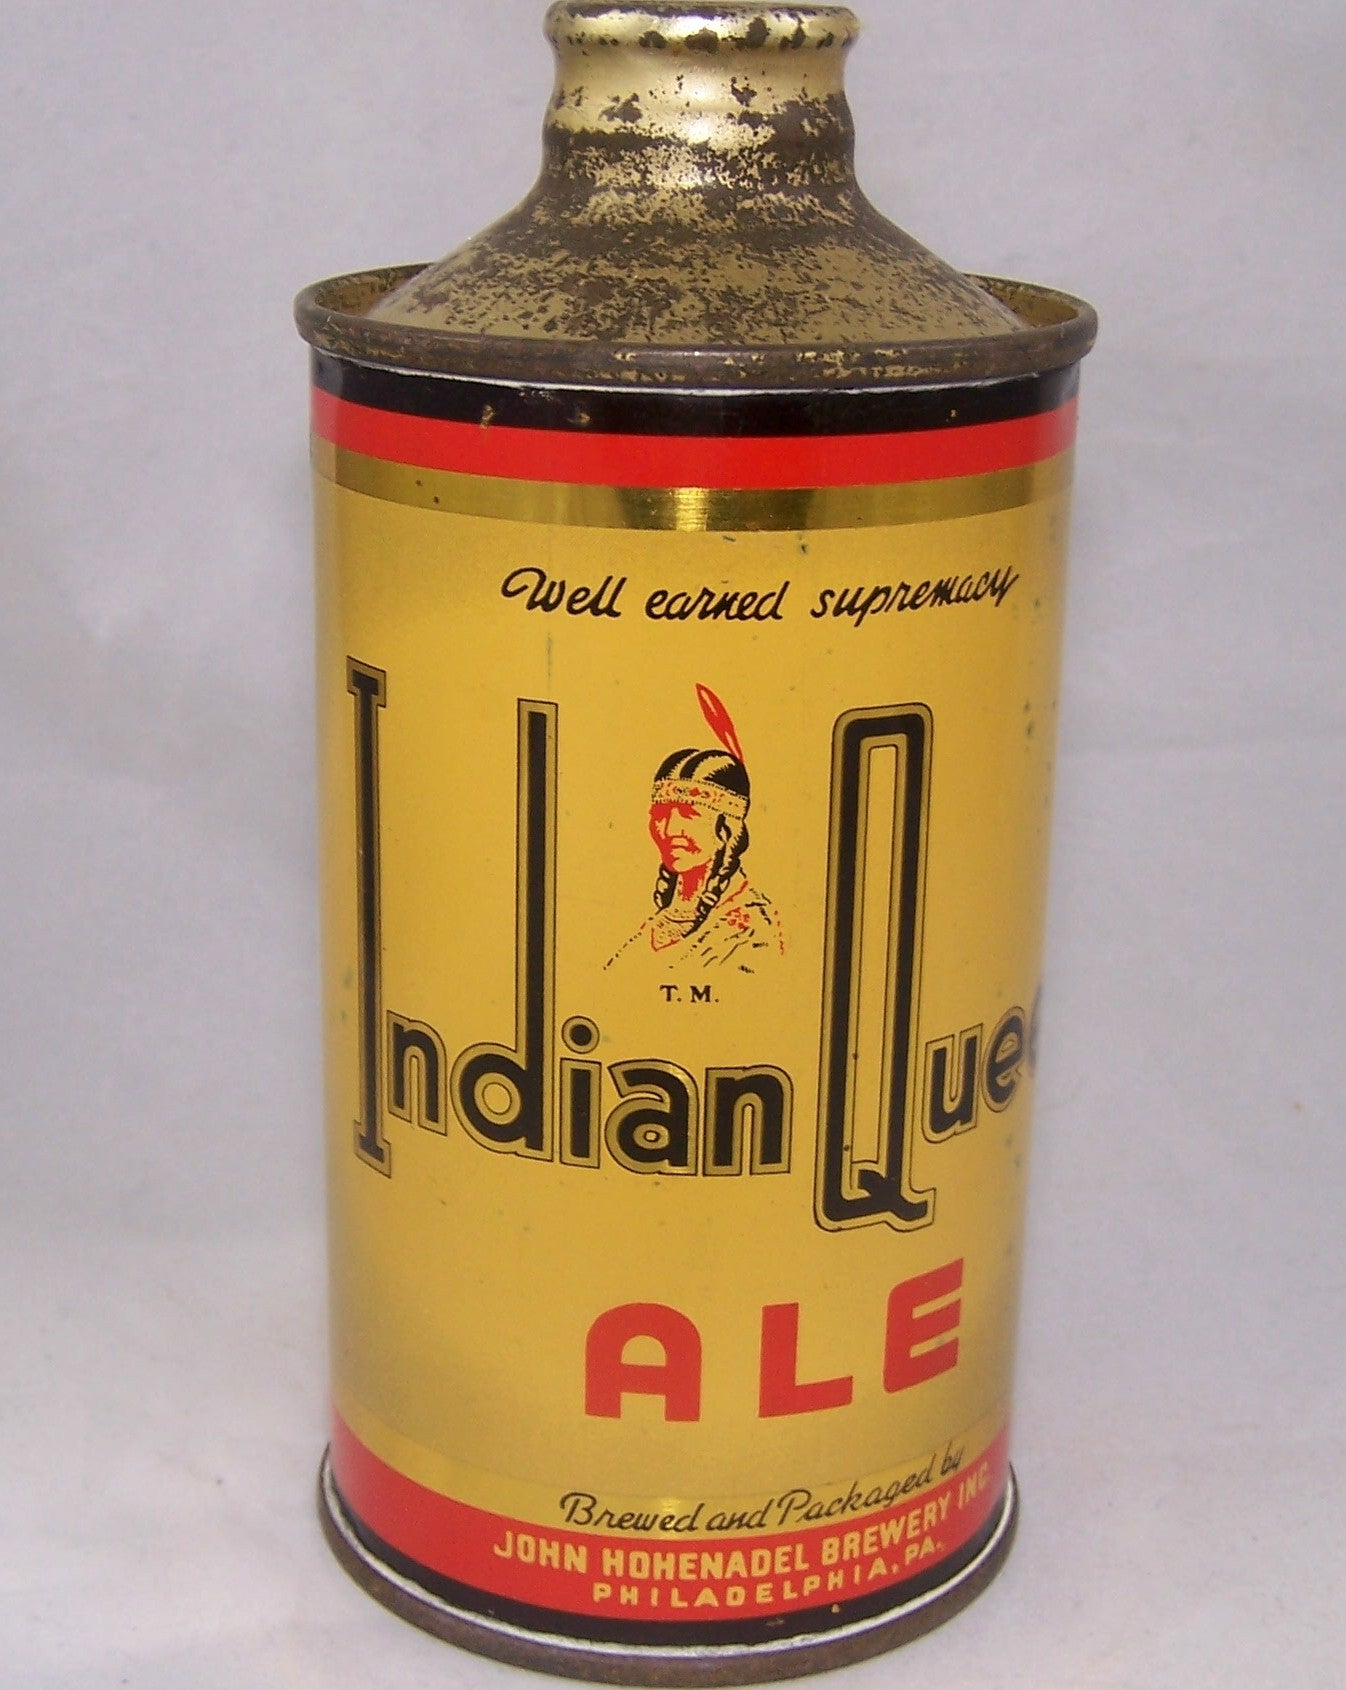 Indian Queen Ale, USBC 168-32, Grade 1 to 1/1+ Sold on 09/09/16